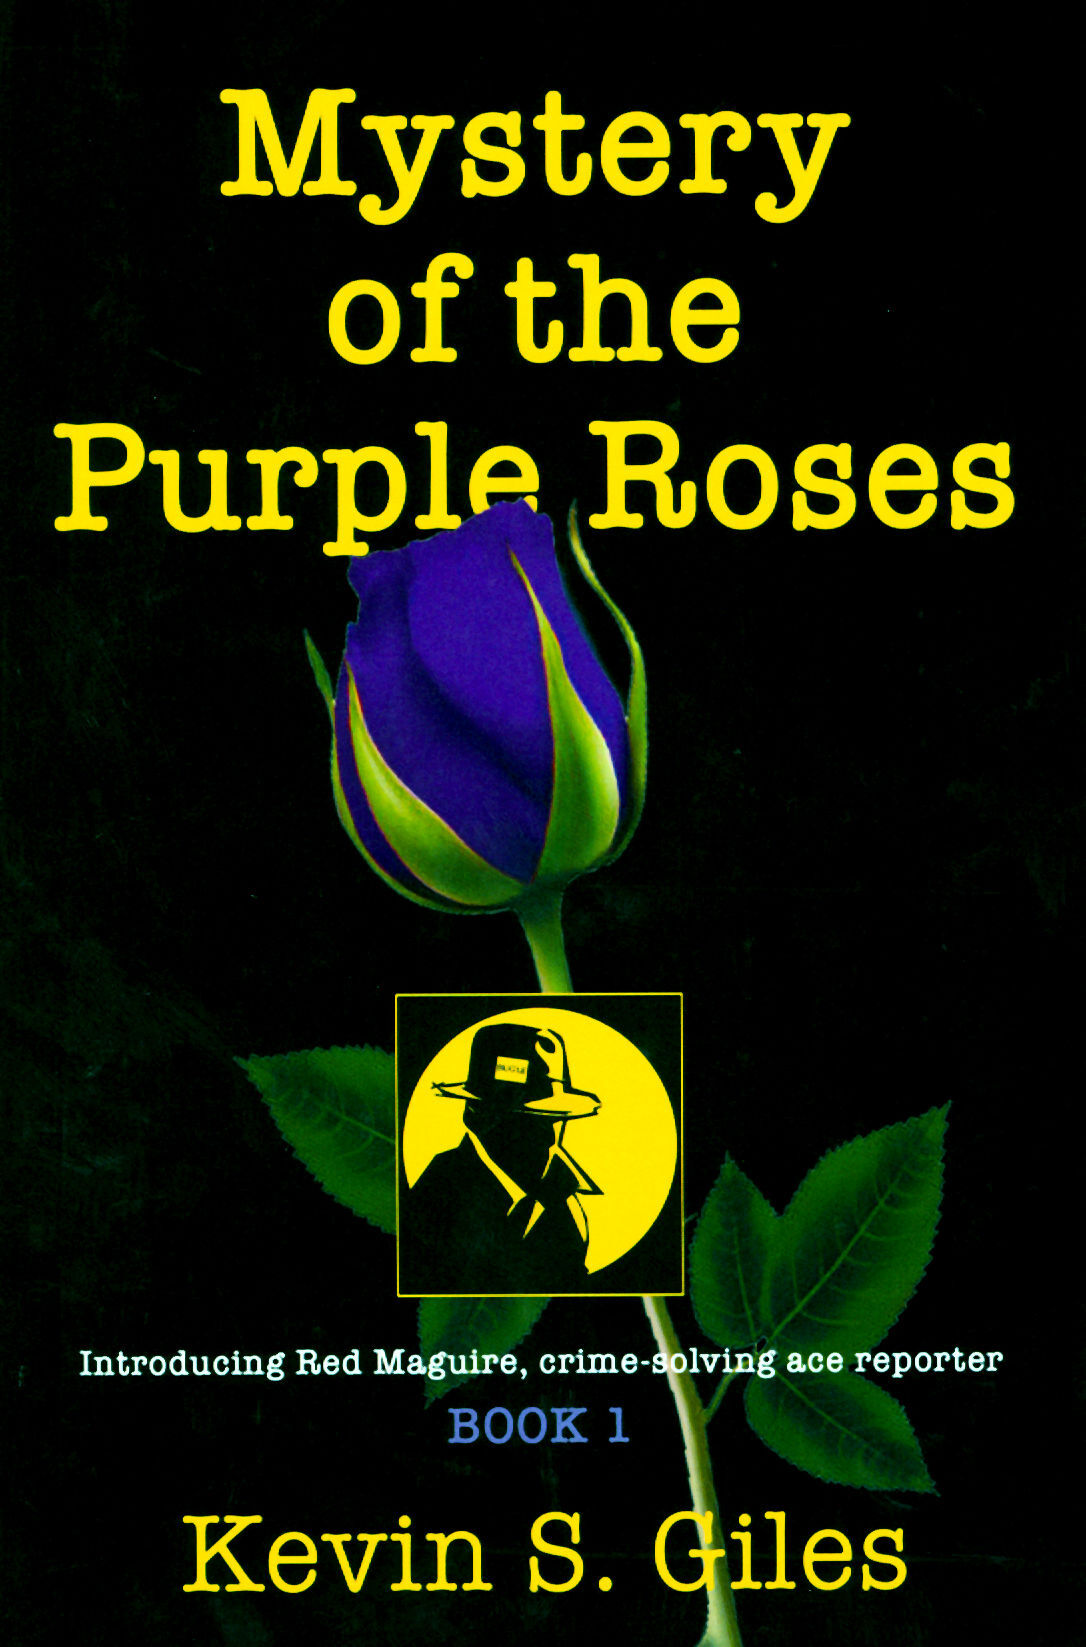 Mystery of the Purple Roses